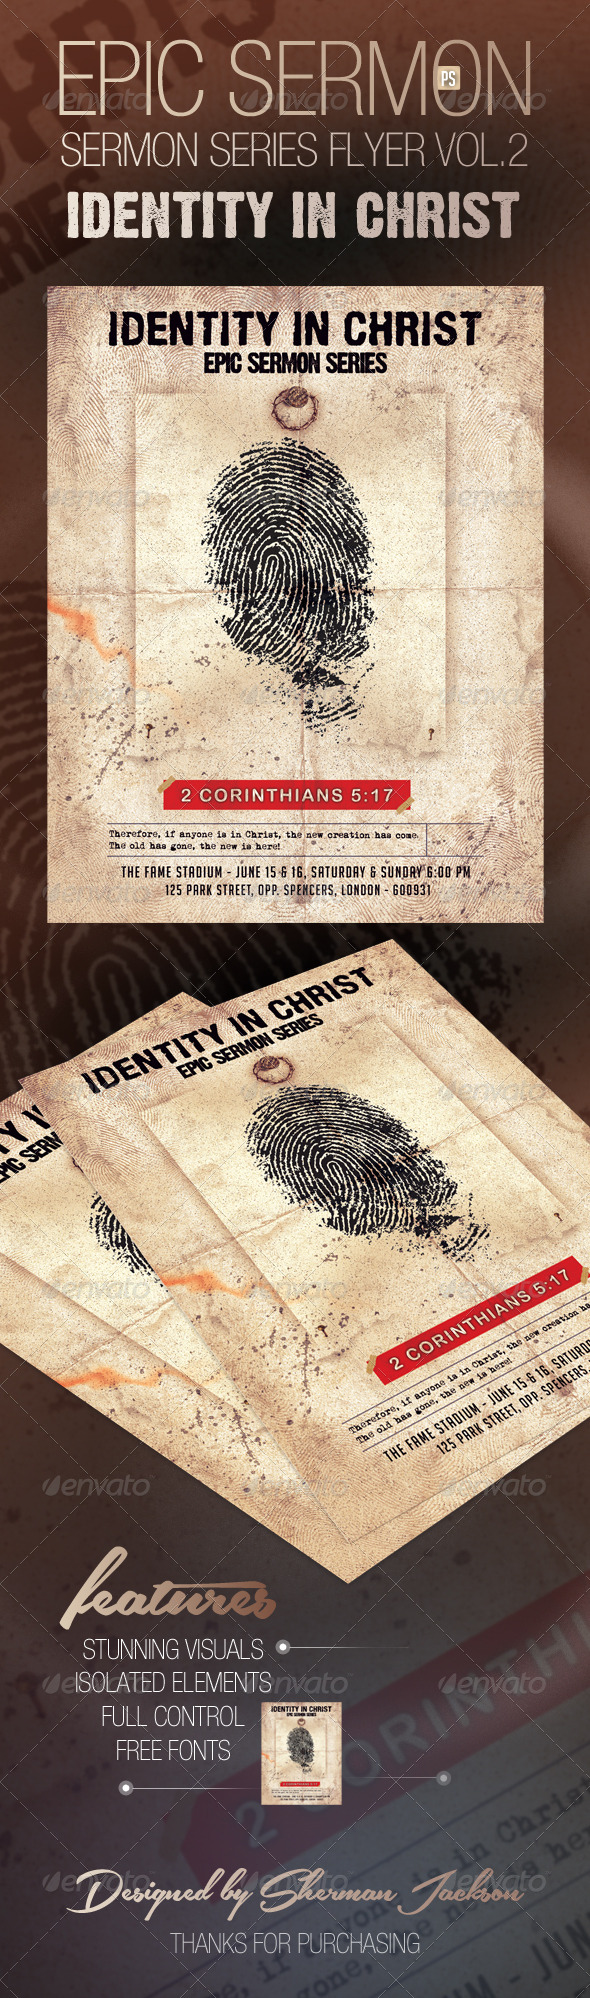 GraphicRiver Epic Sermon Series Flyer Vol.2 7874945